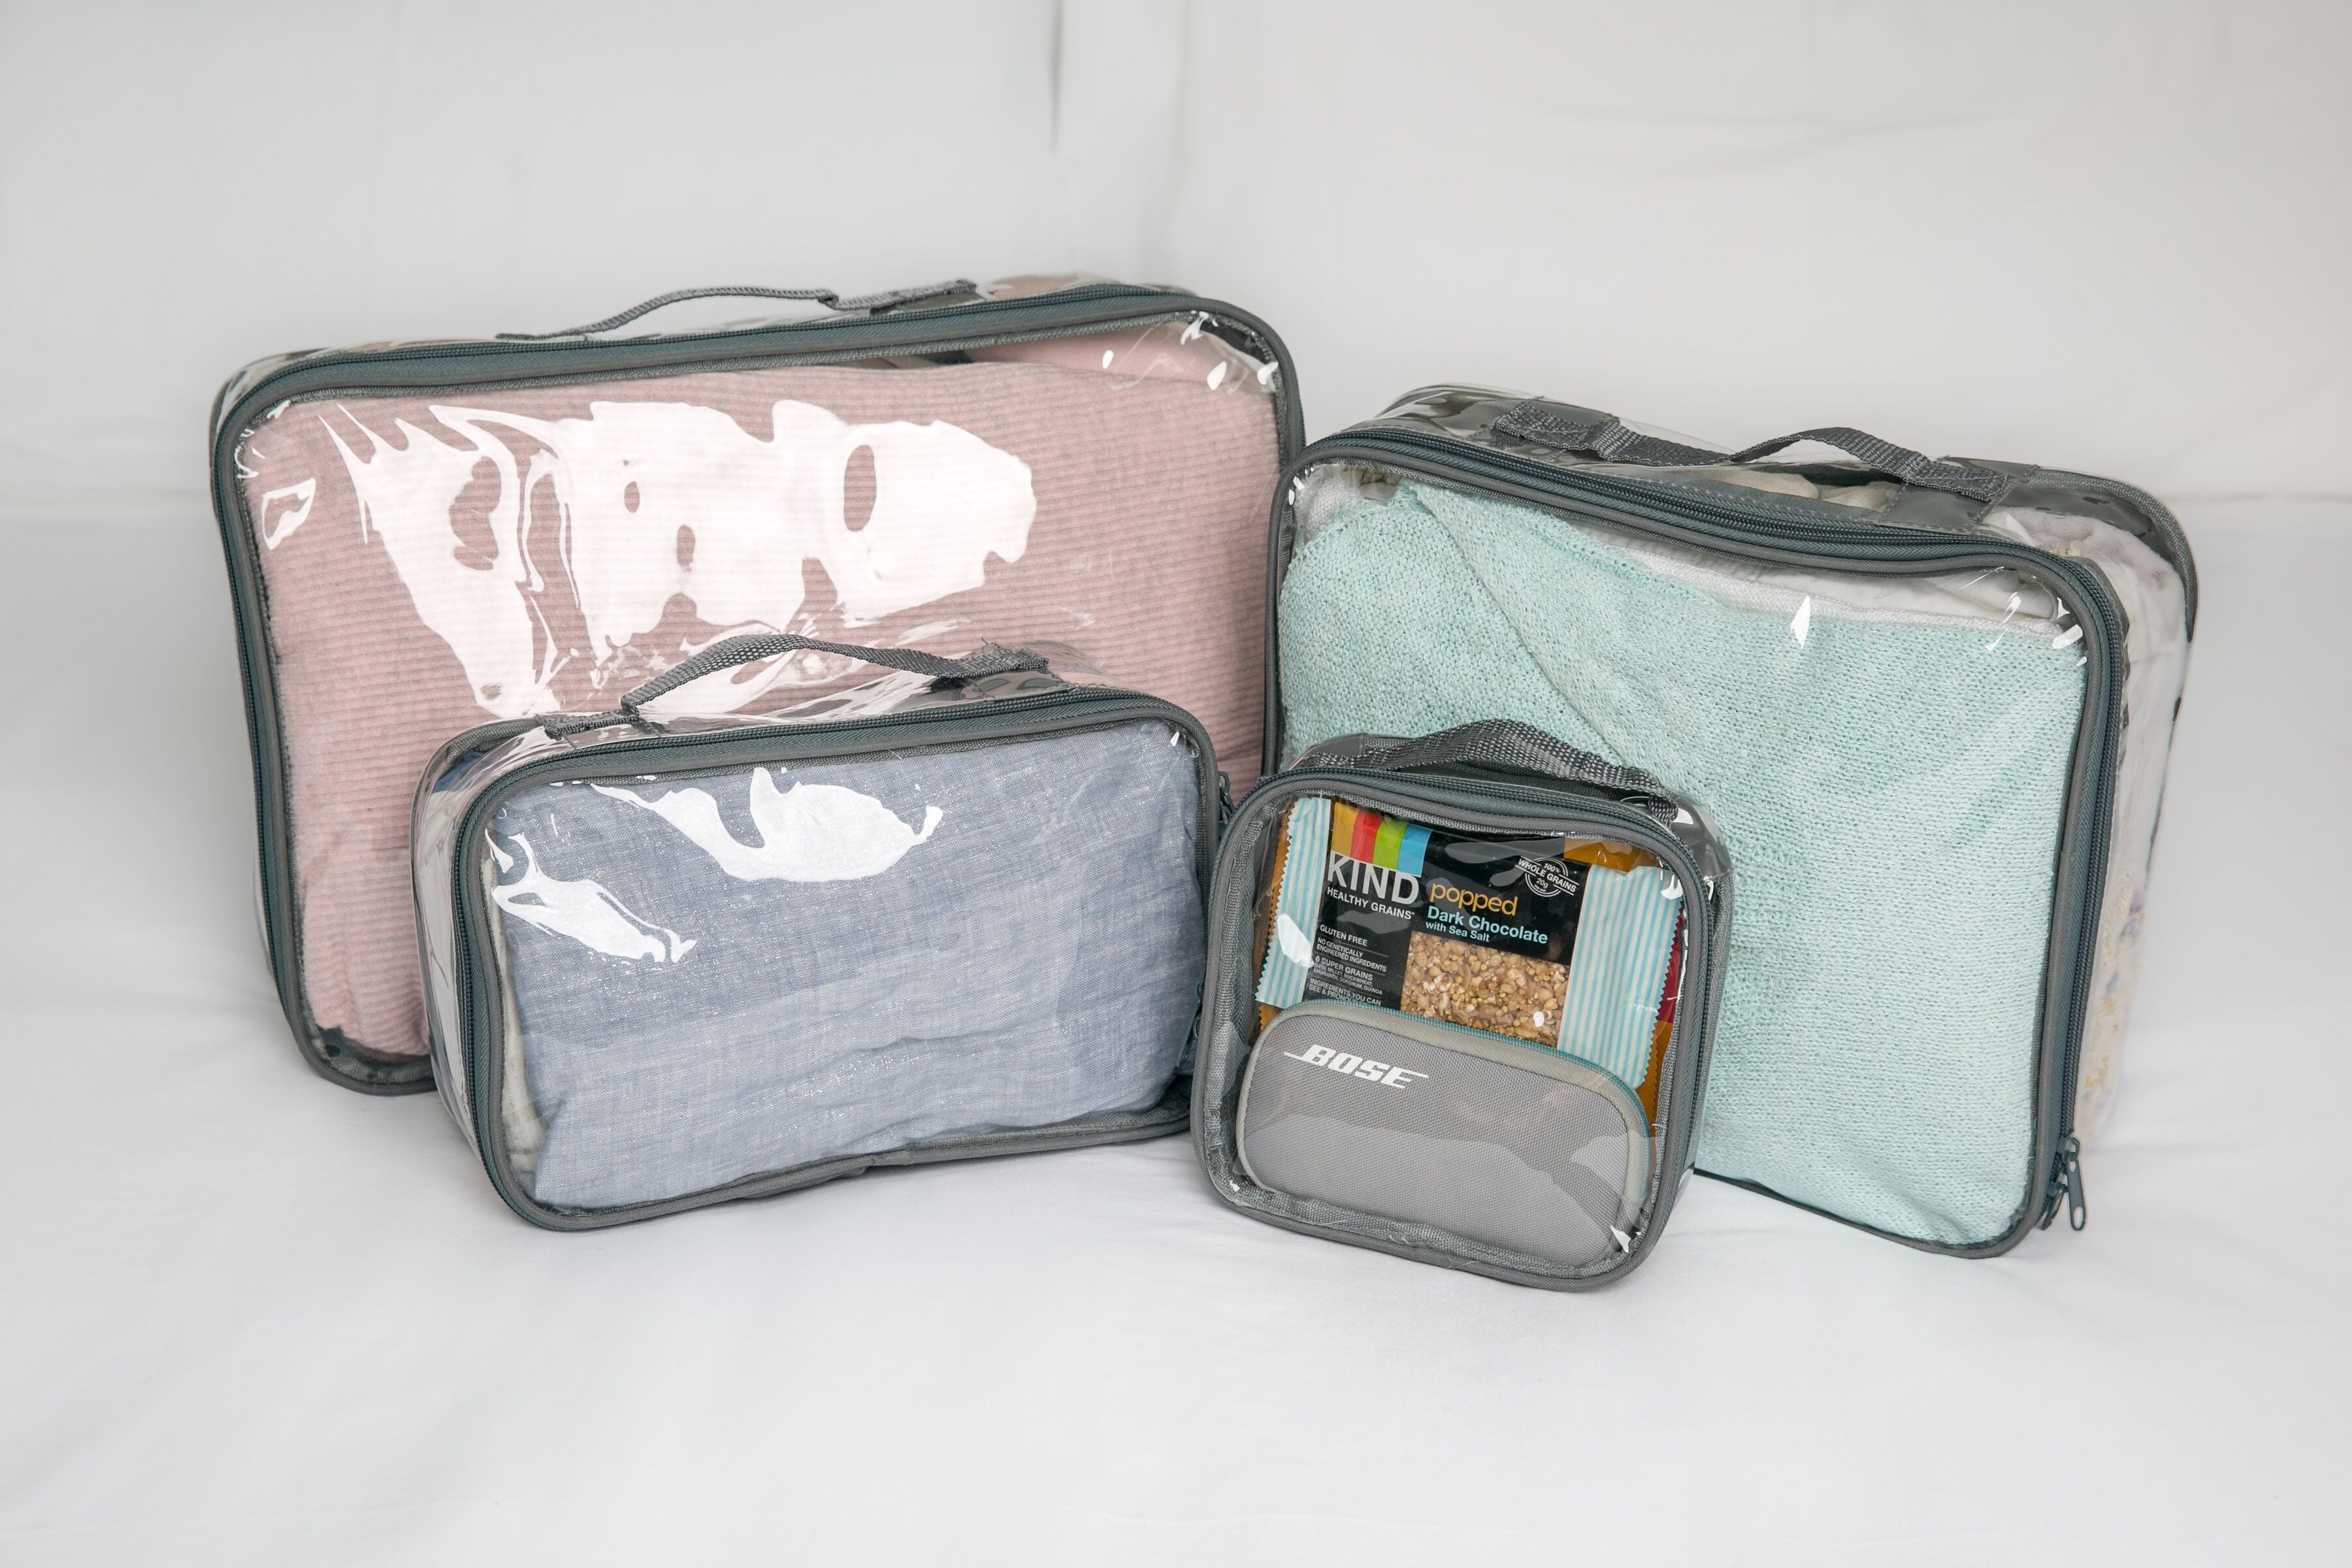 Defining packing cubes and compression bags